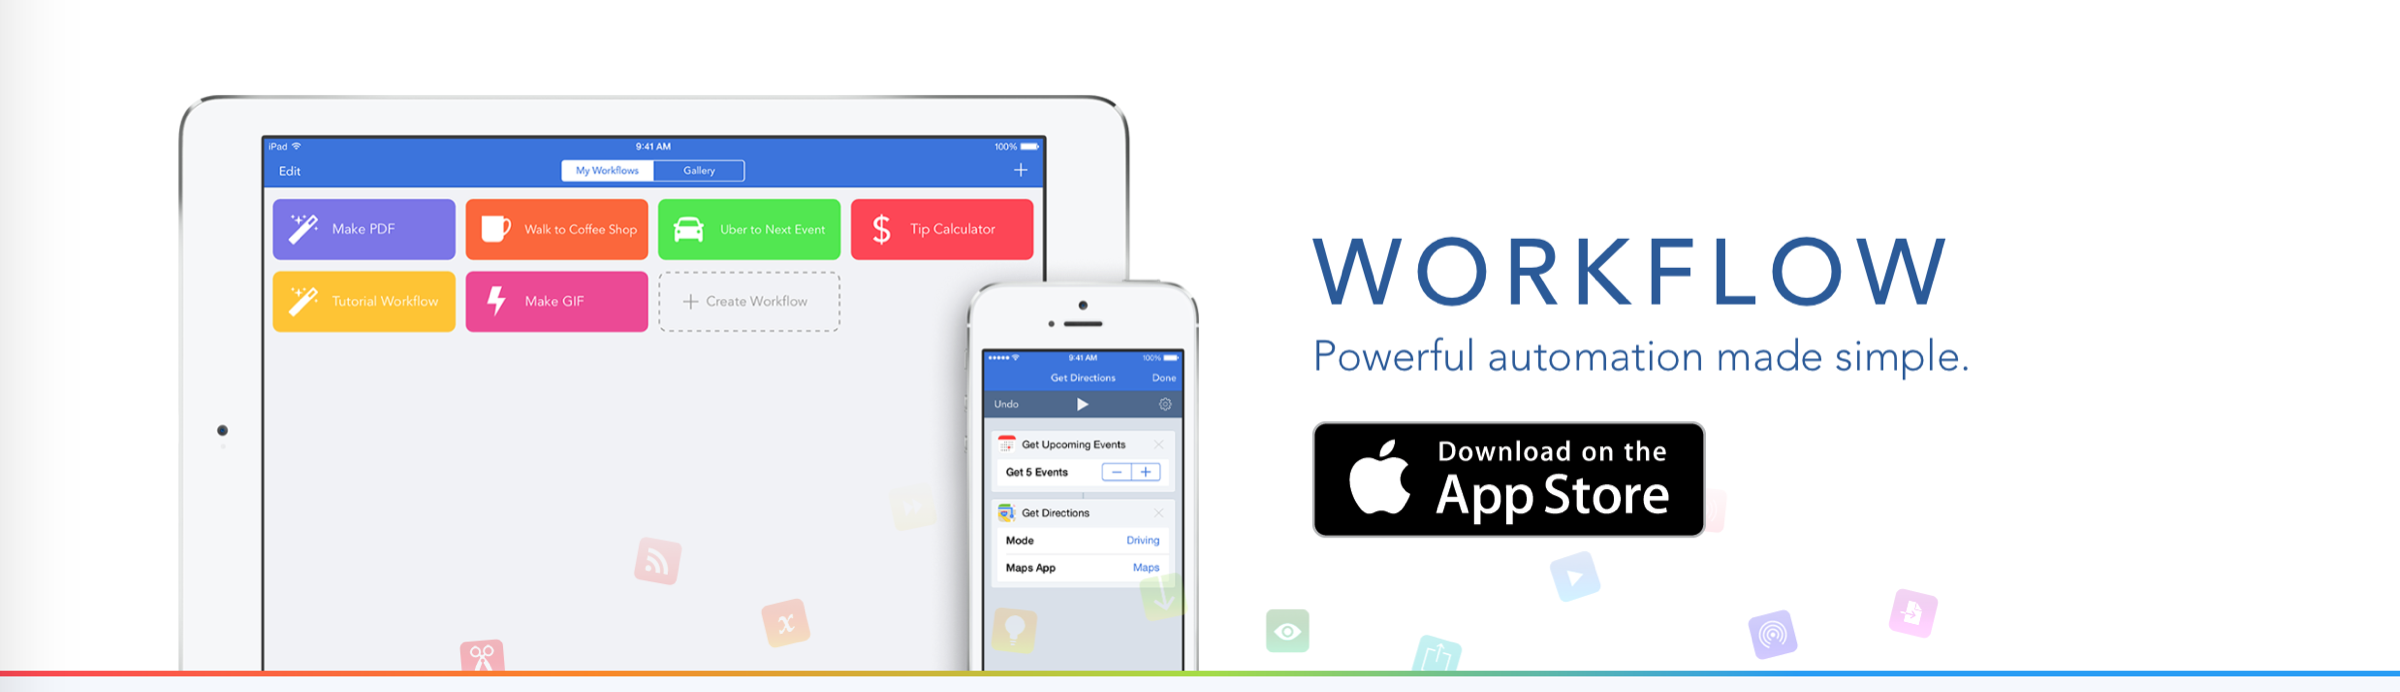 Workflow, the must-have iOS automation app, unveils an application for the Apple Watch